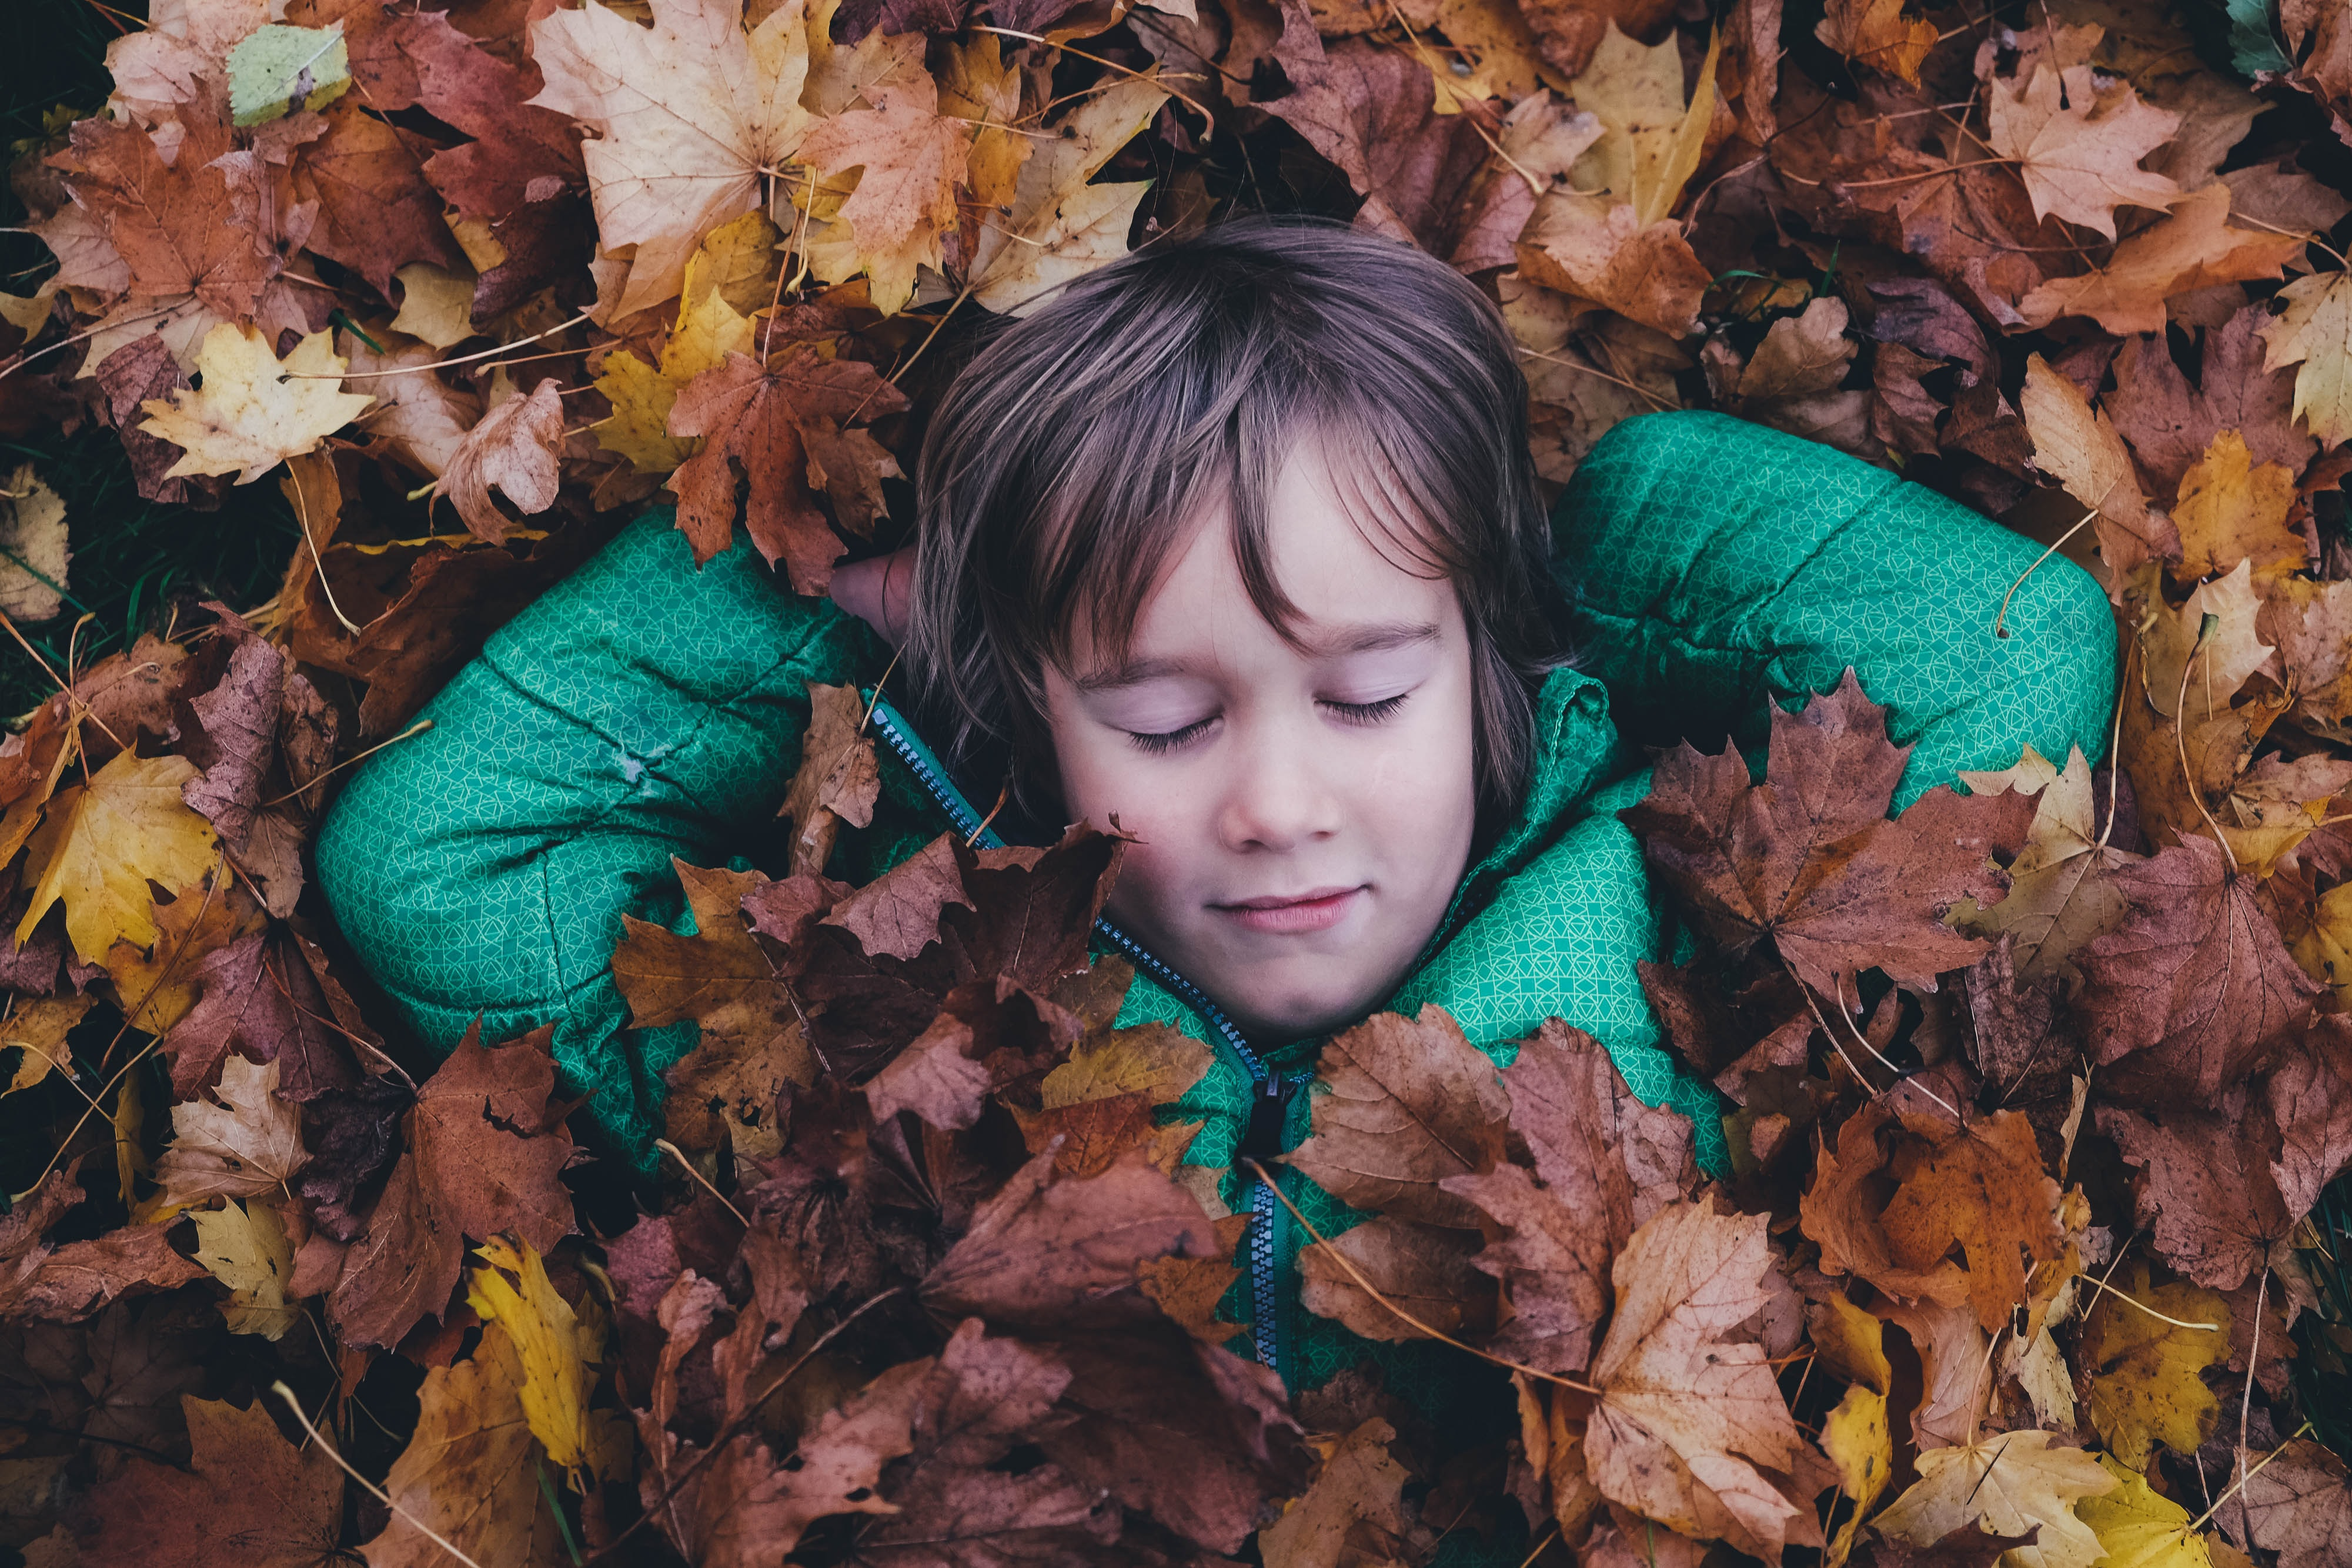 A child lying on the ground under a thick layer of autumn leaves